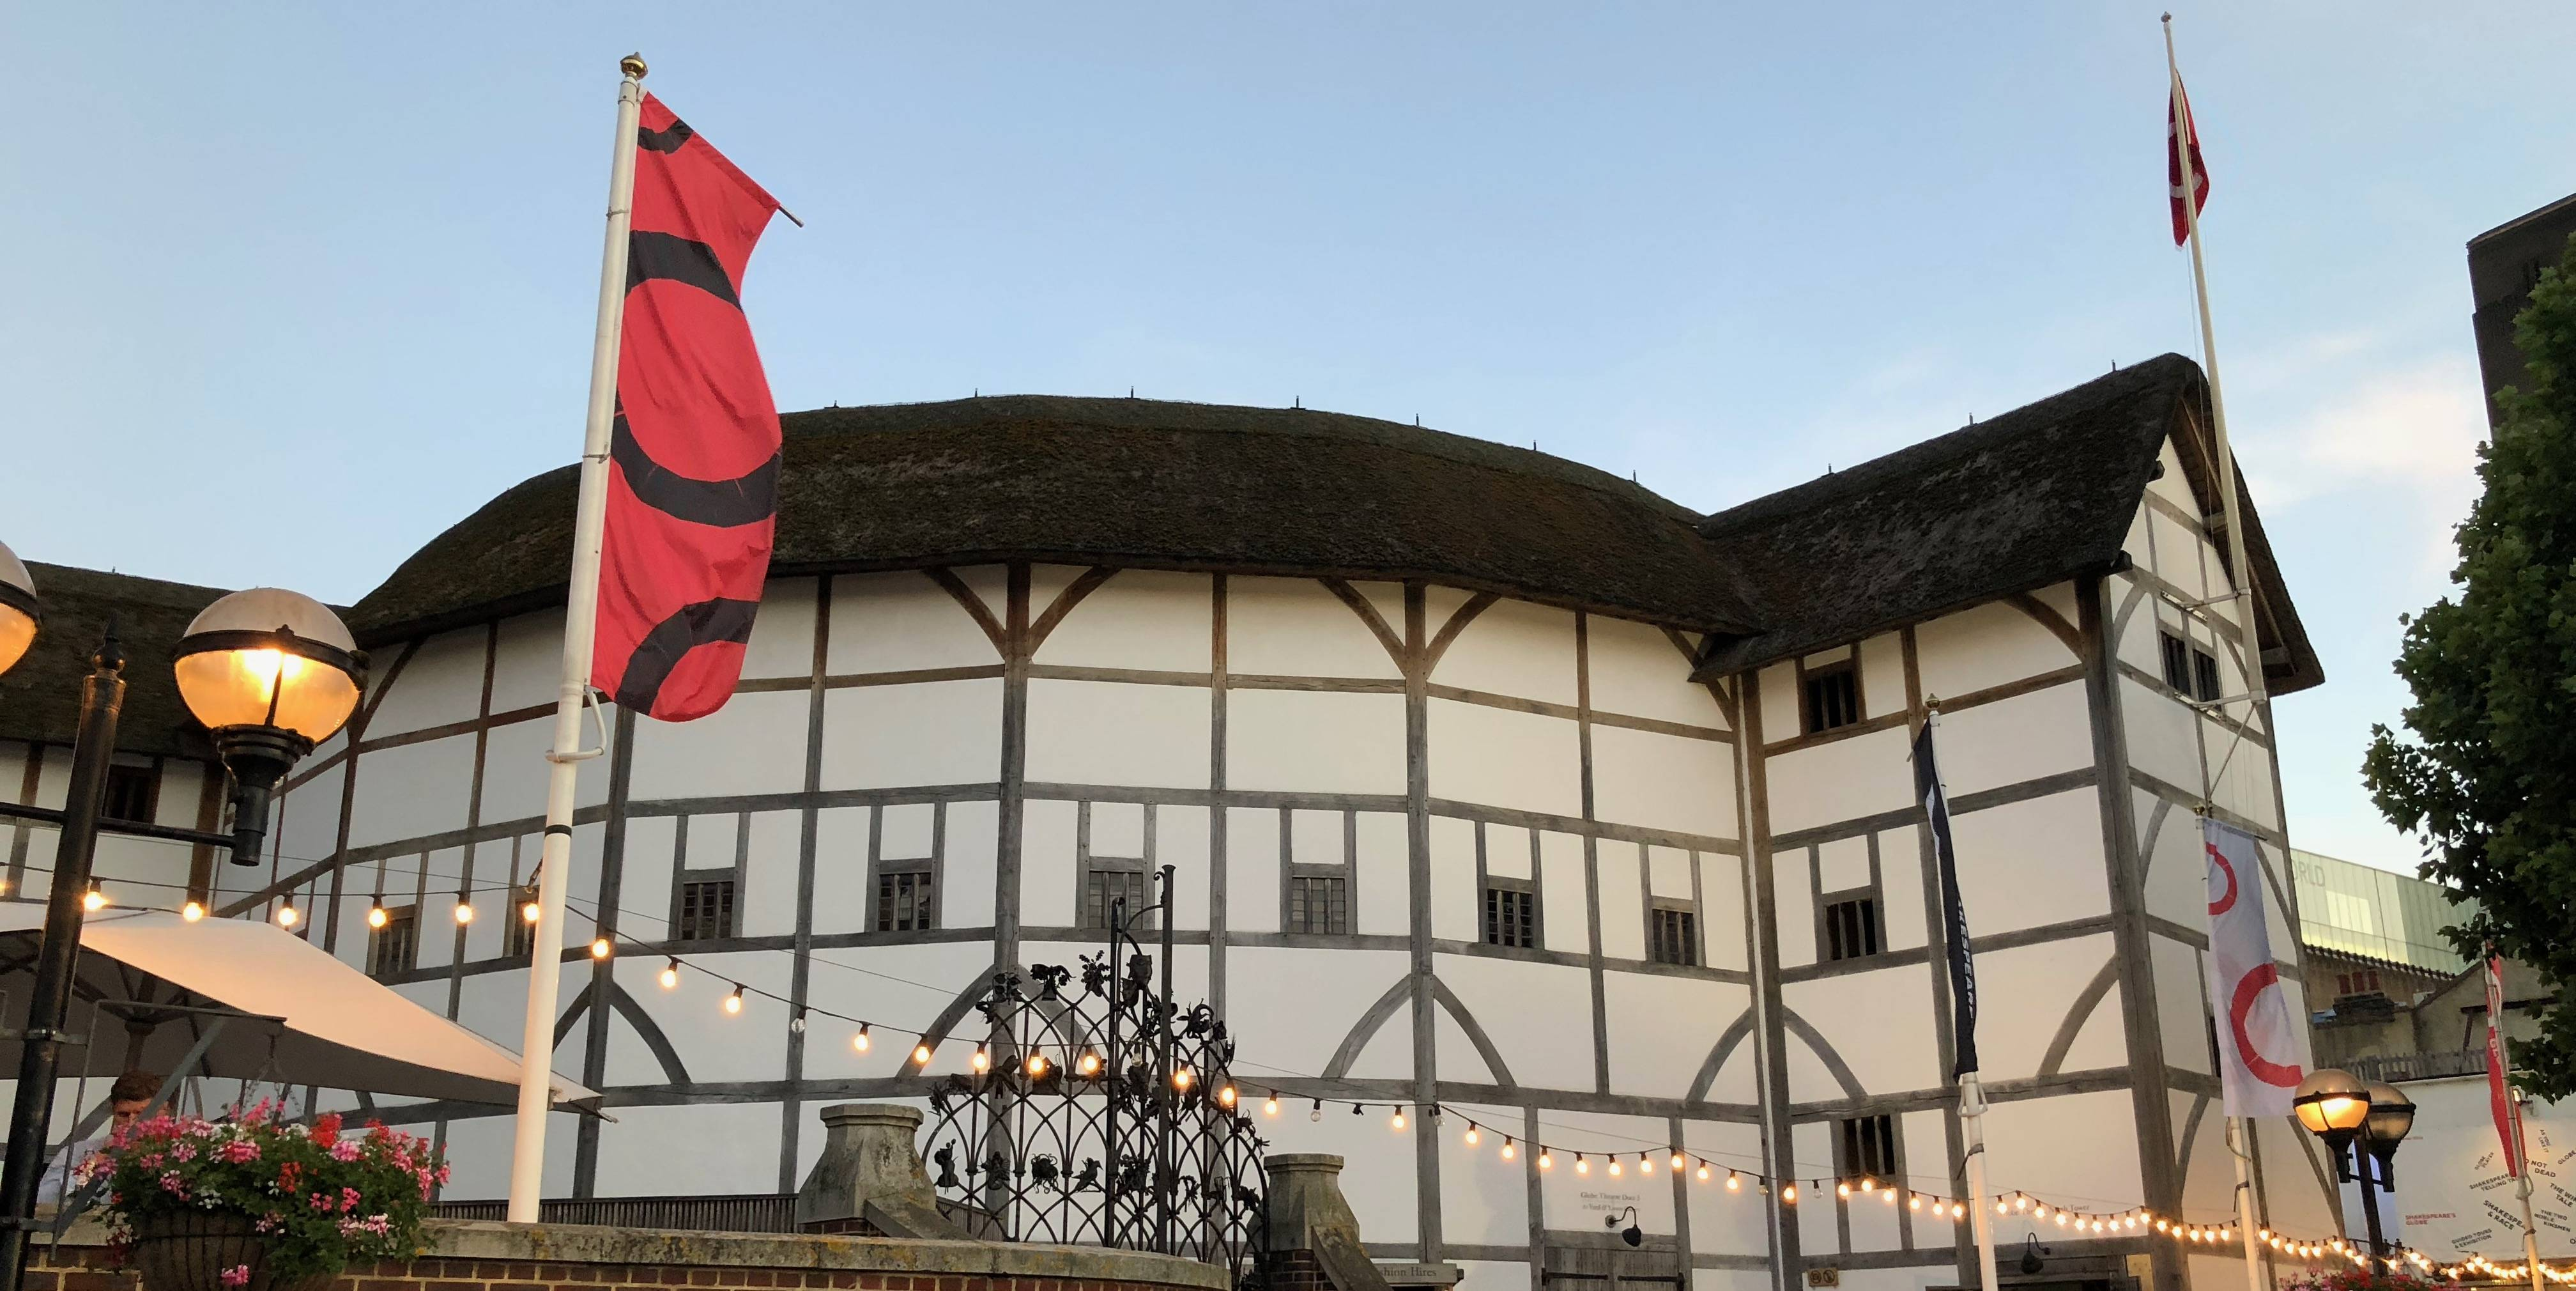 Shakespeare's Globe in London. (File photo by Ron Charles/The Washington Post)